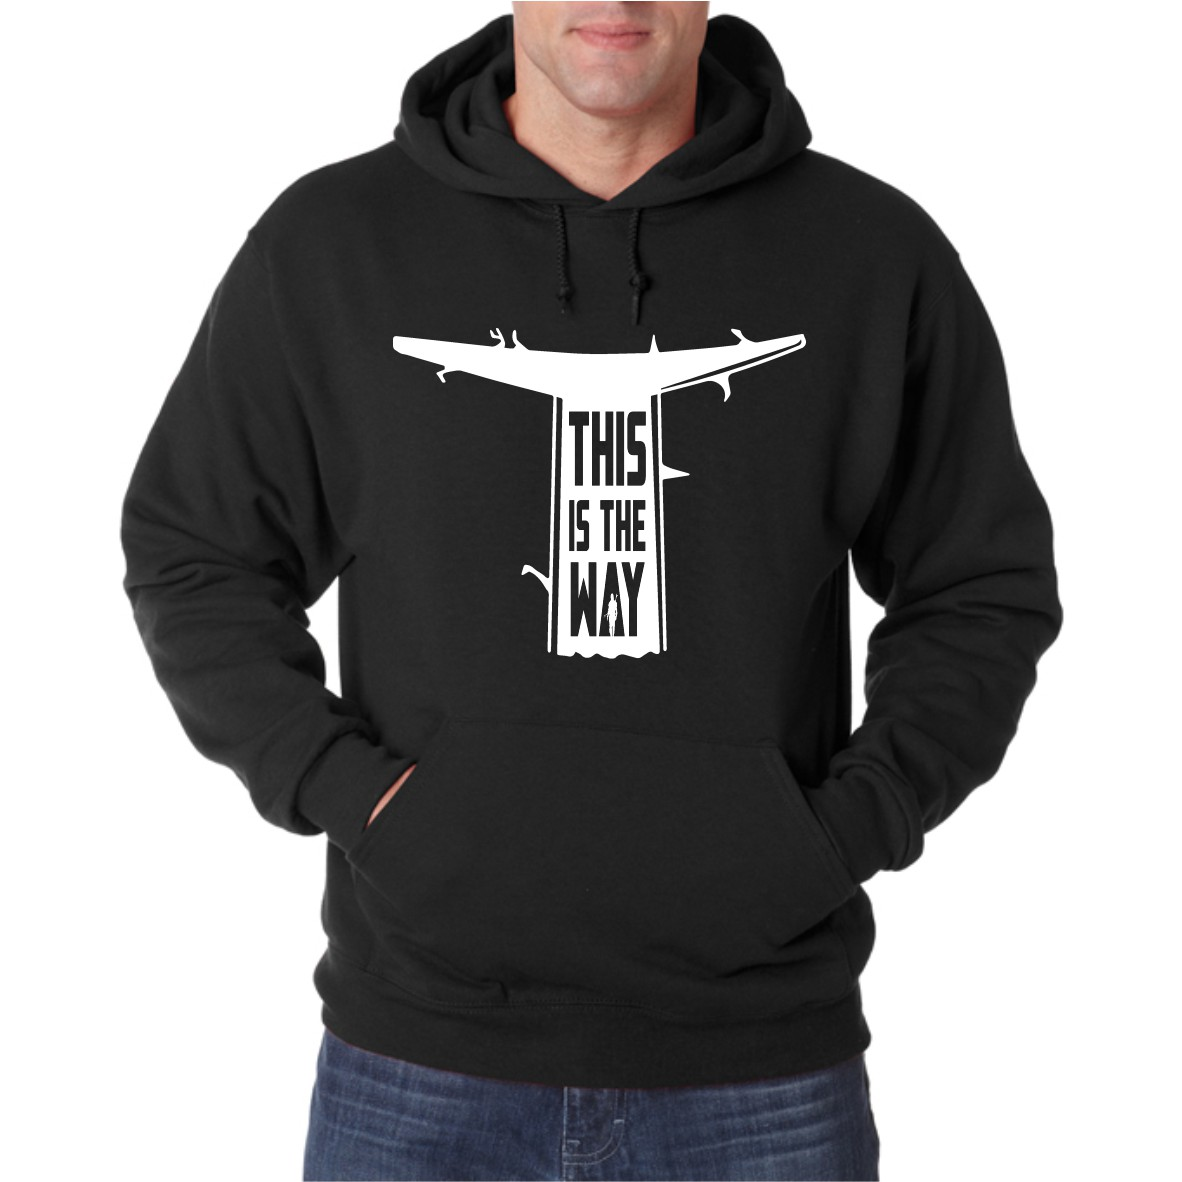 TITW HOODED